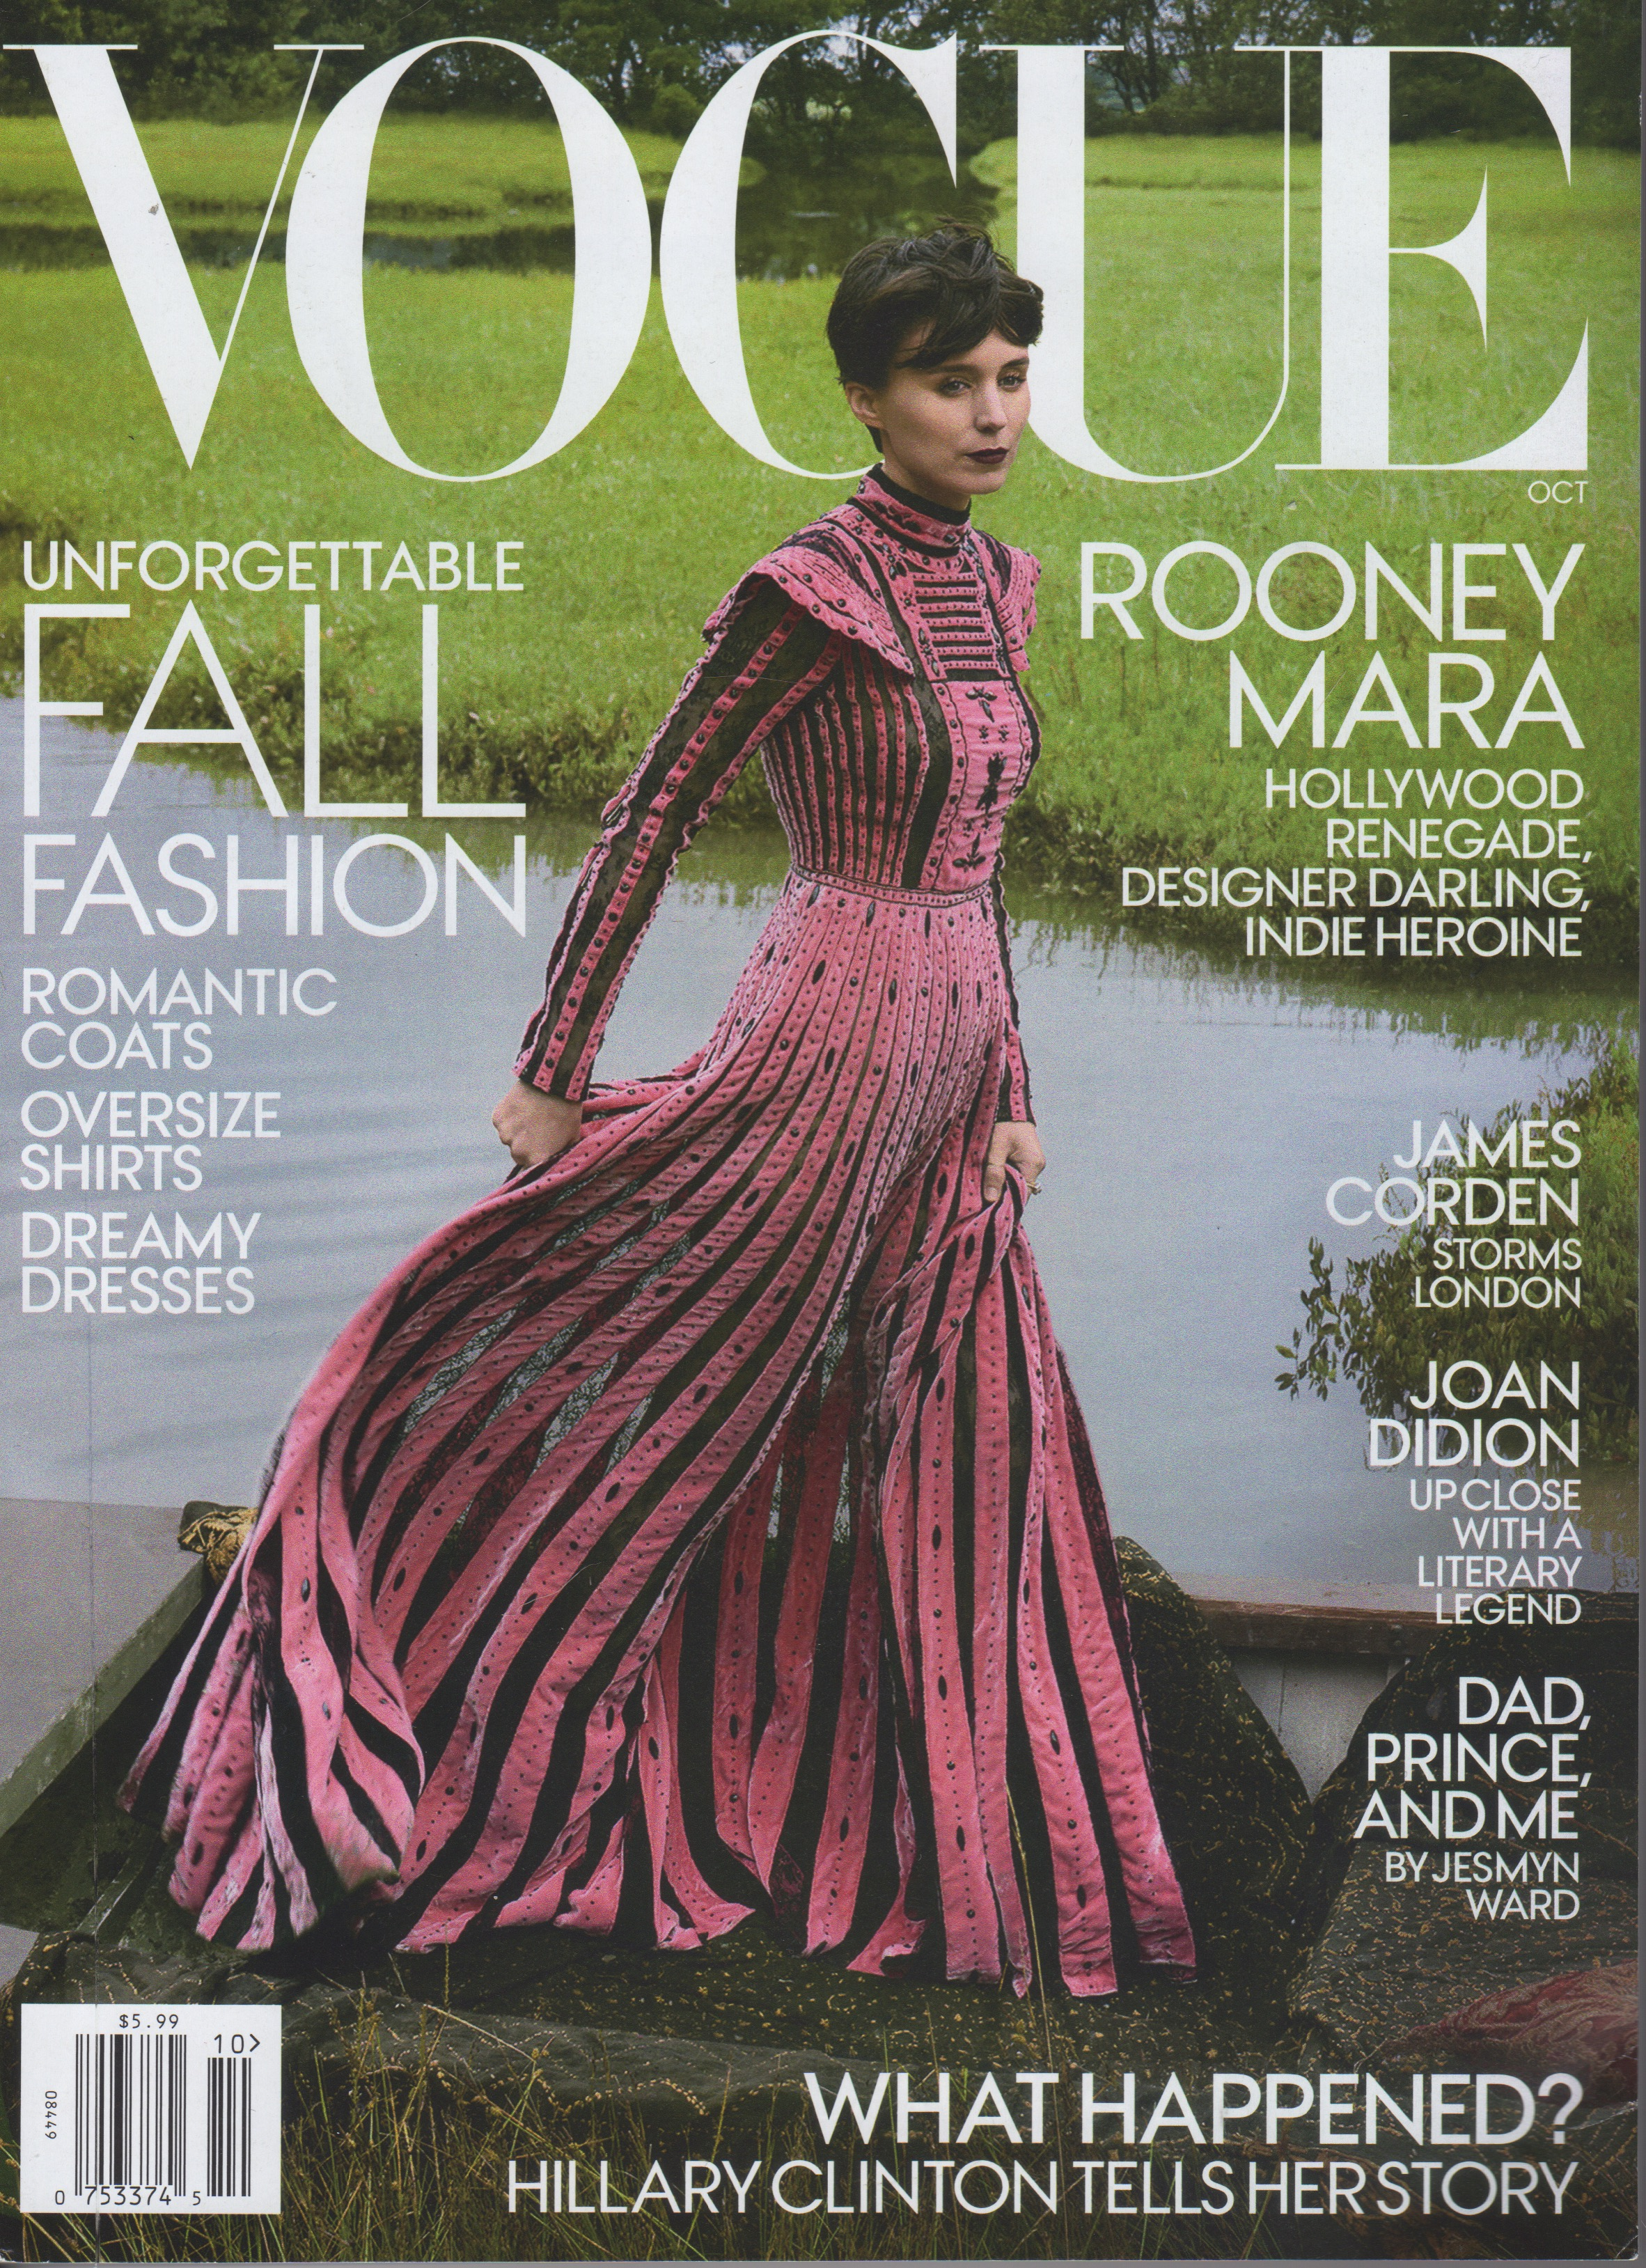 VogueOct17Cover.jpeg